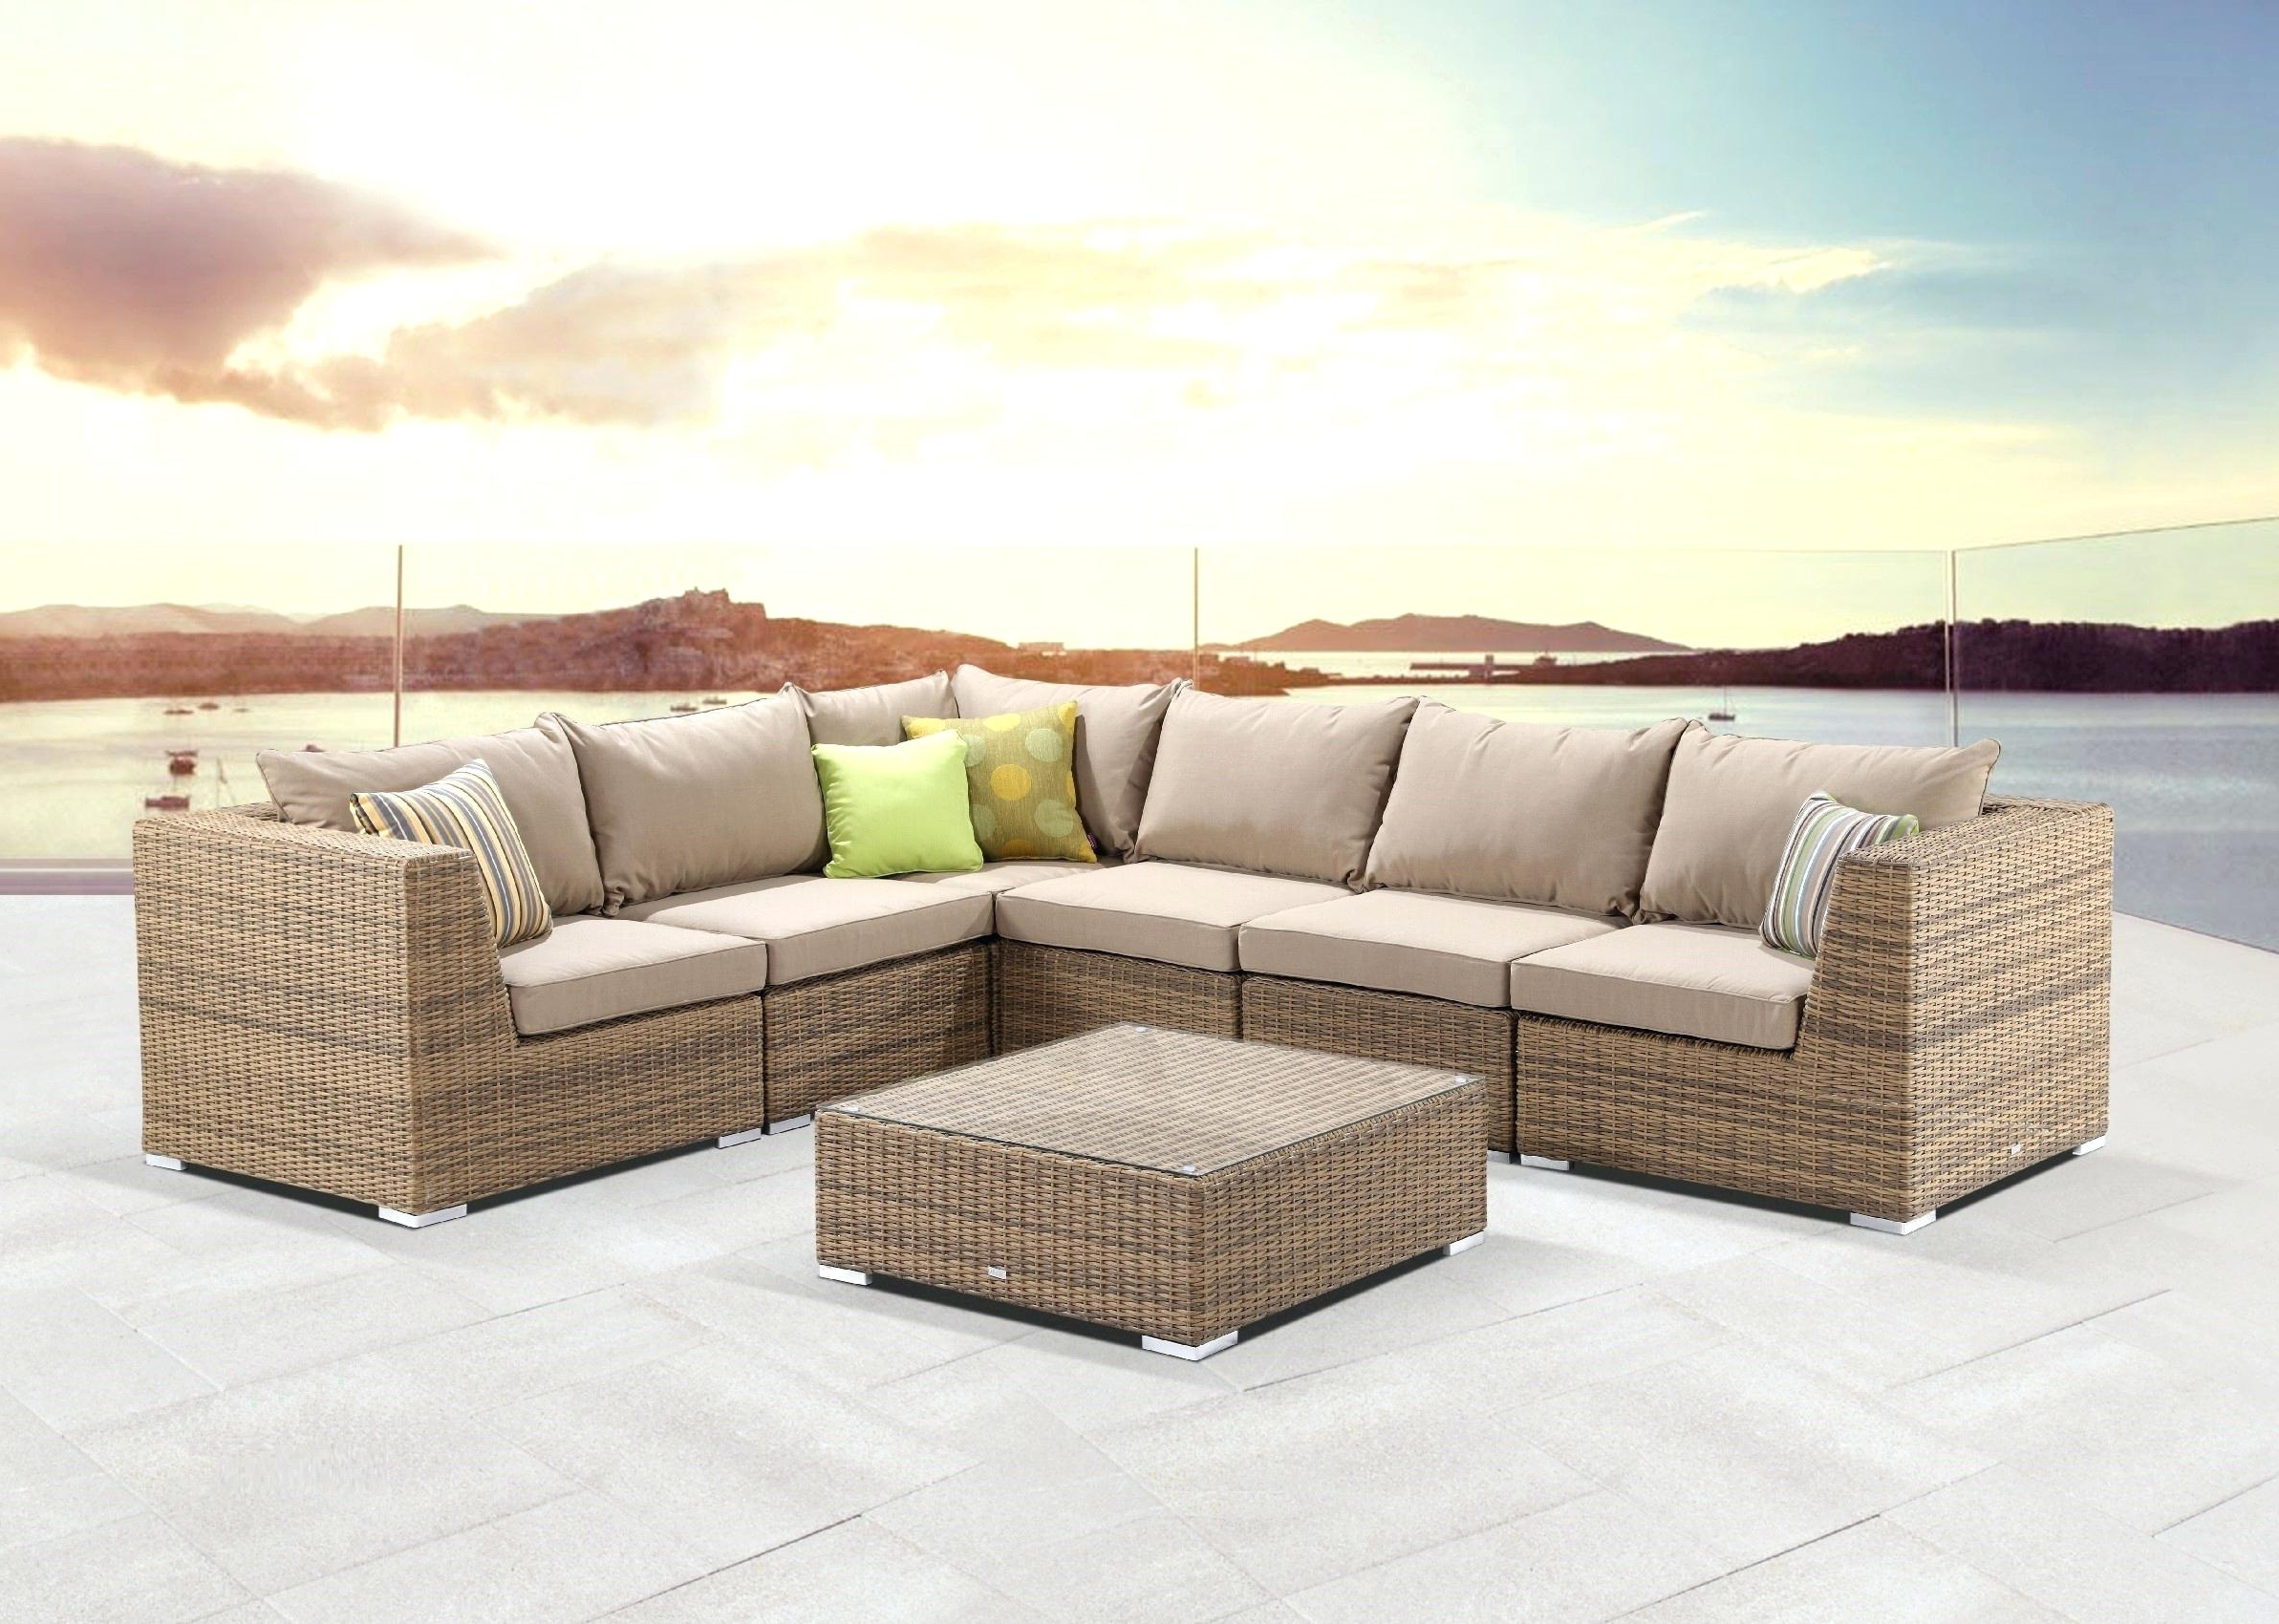 Trinidad And Tobago Sectional Sofas Within Popular Trinidad Furniture Stores – 4Parkar (View 7 of 15)